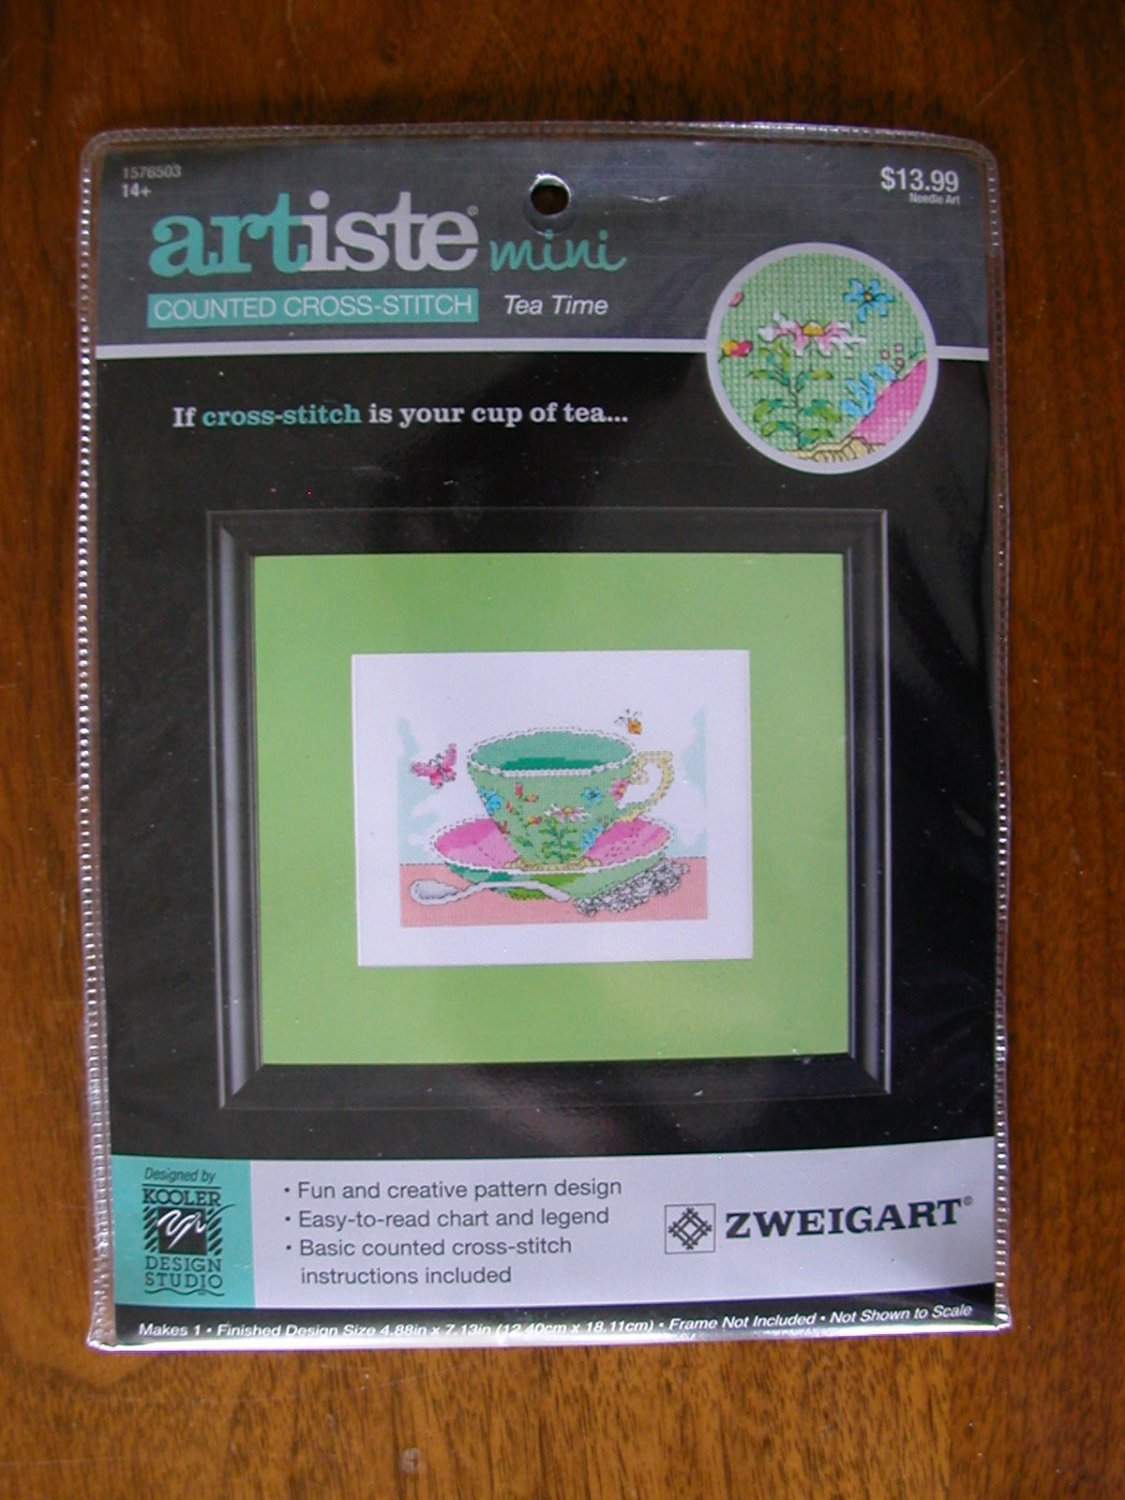 Artiste Mini Tea Time teacup flower butterfly counted cross stitch kit 1576503